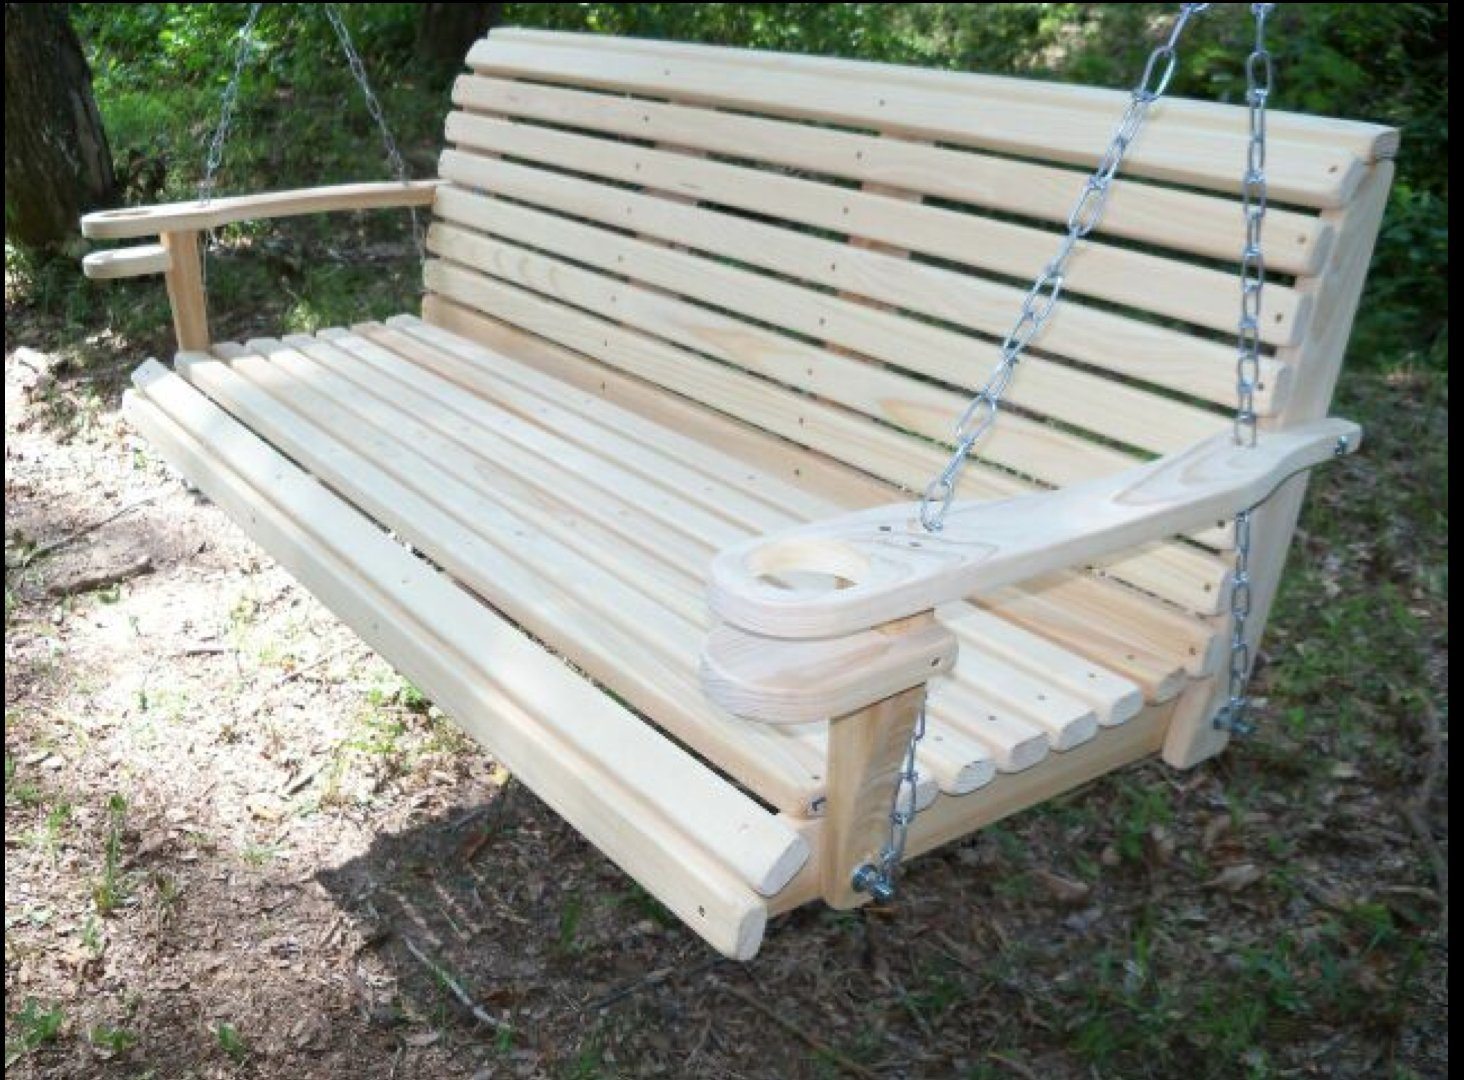 Amazon.com : 5 Ft USA Made Cypress Roll Back Porch Swing with ...